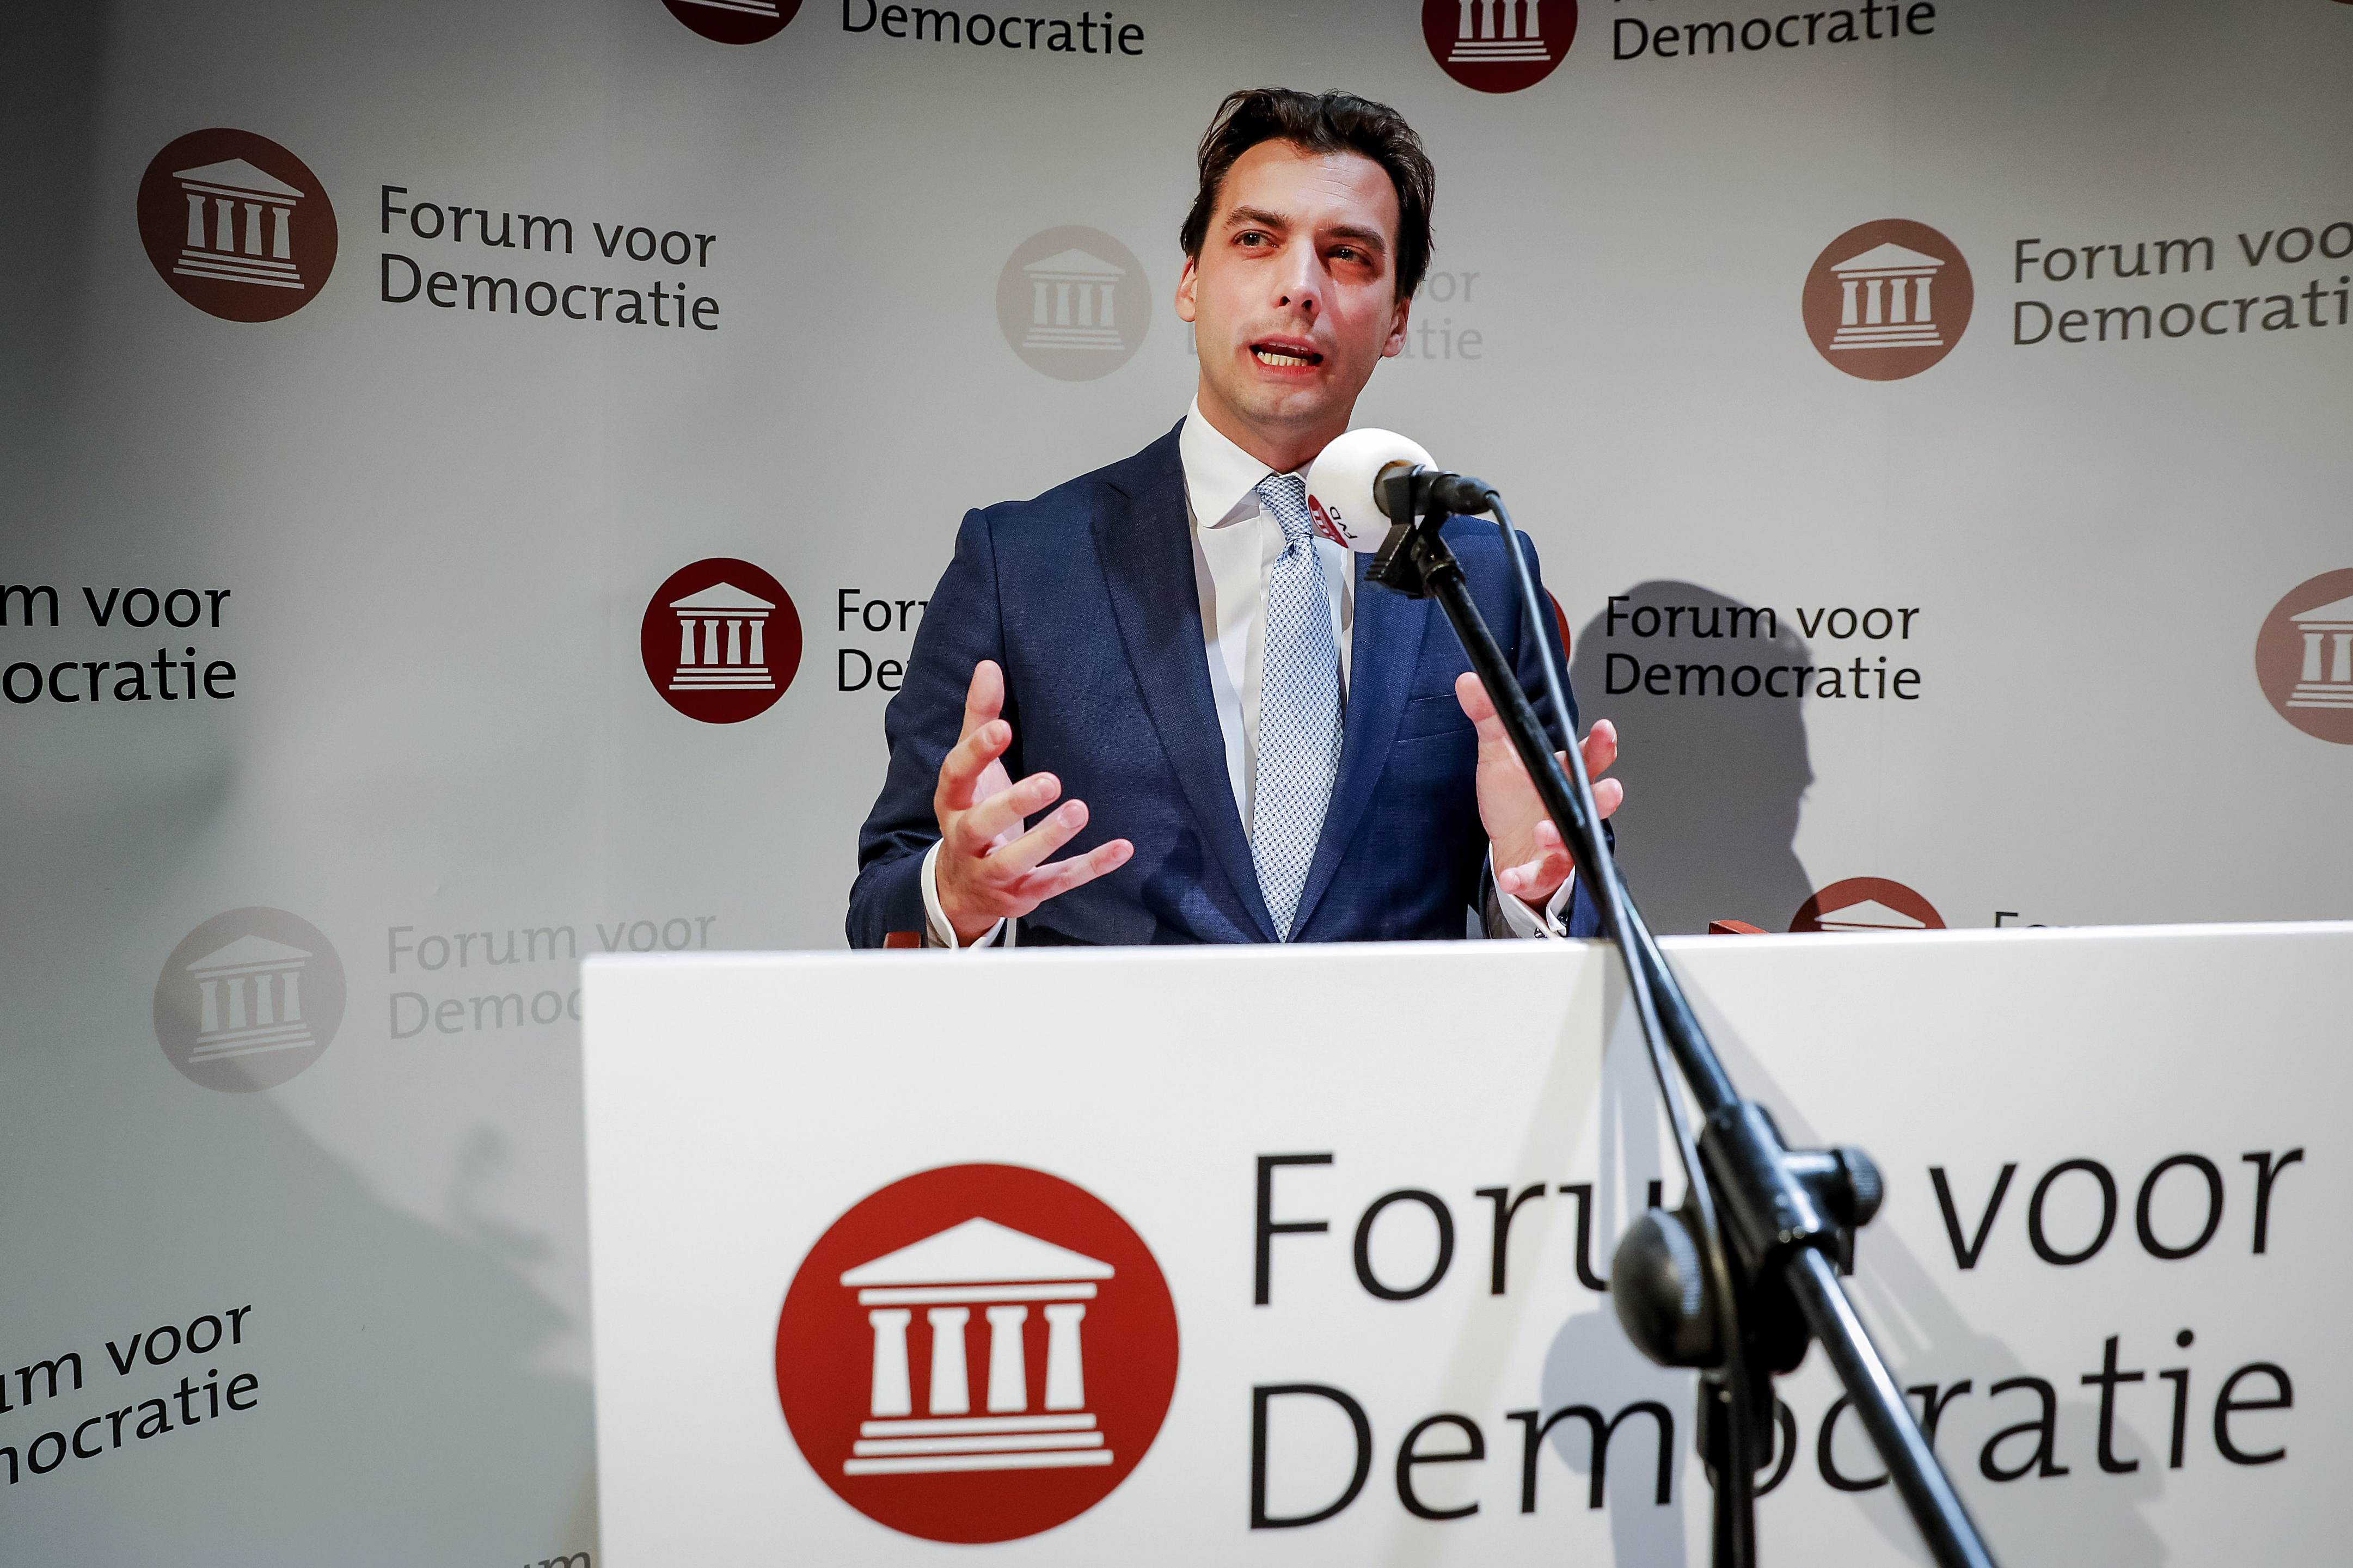 Thierry Baudet from Forum for Democracy (FVD) party gives a speech during the election night of the Provincial Council elections and the water board elections on March 21, 2019 in Zeist.